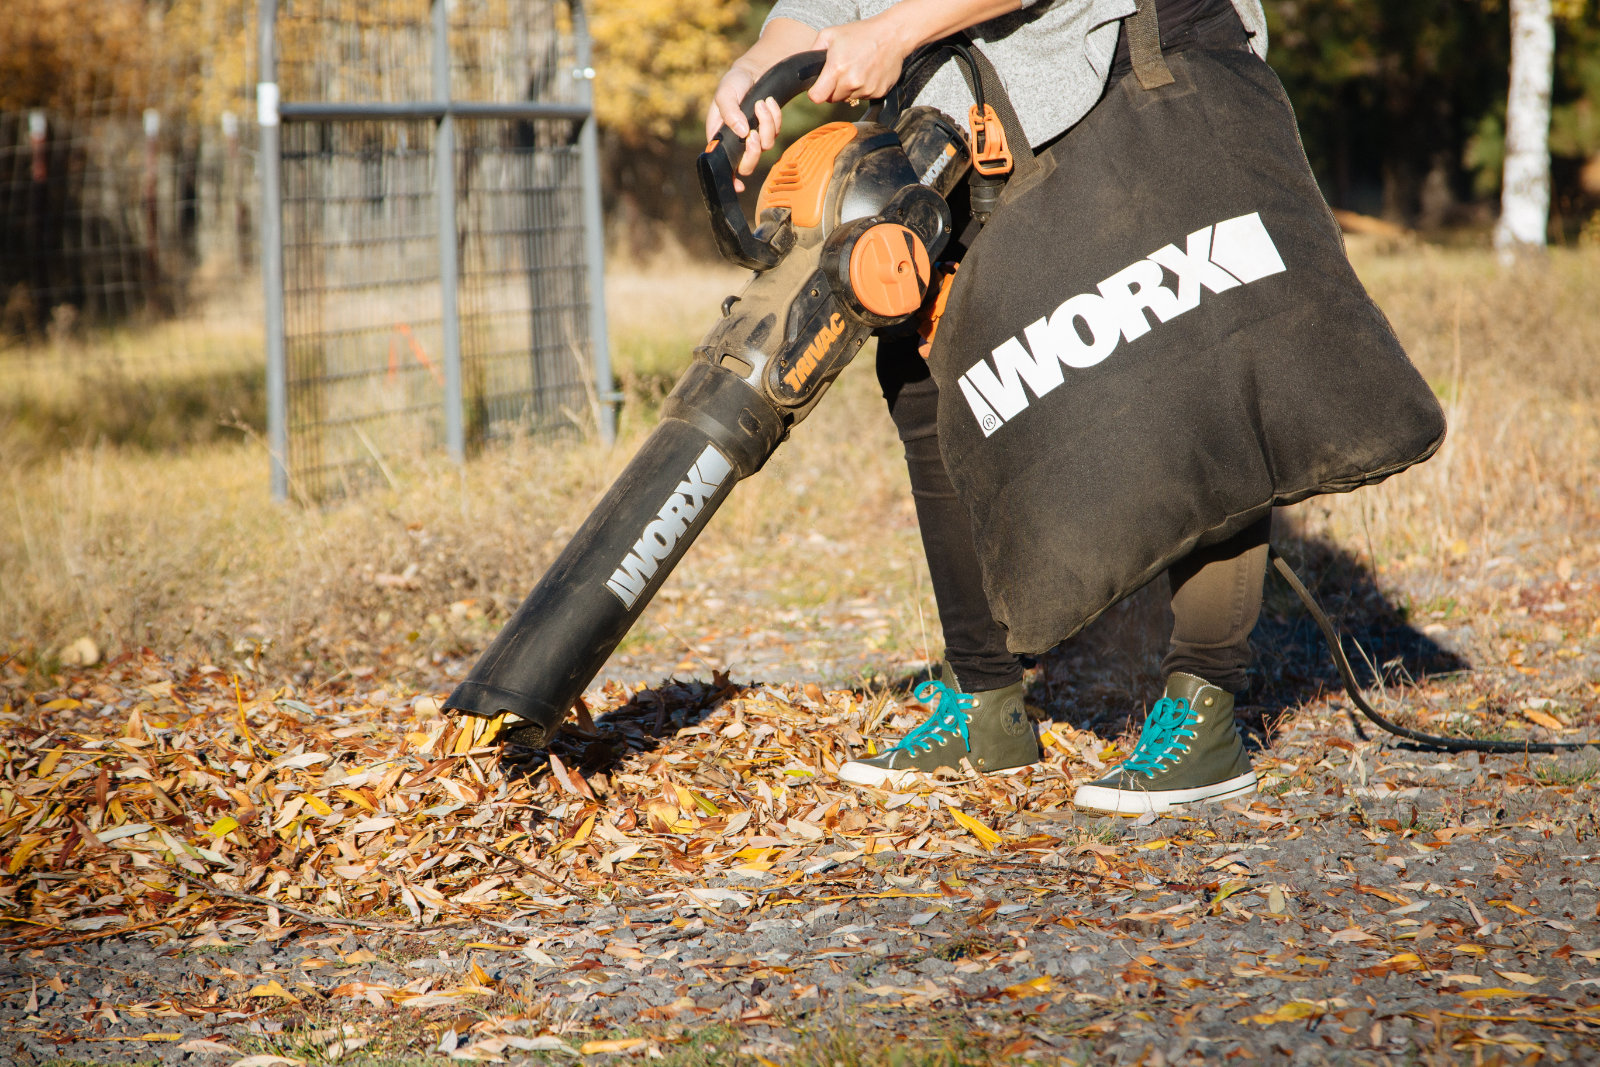 Worx Leaf Blower Bag